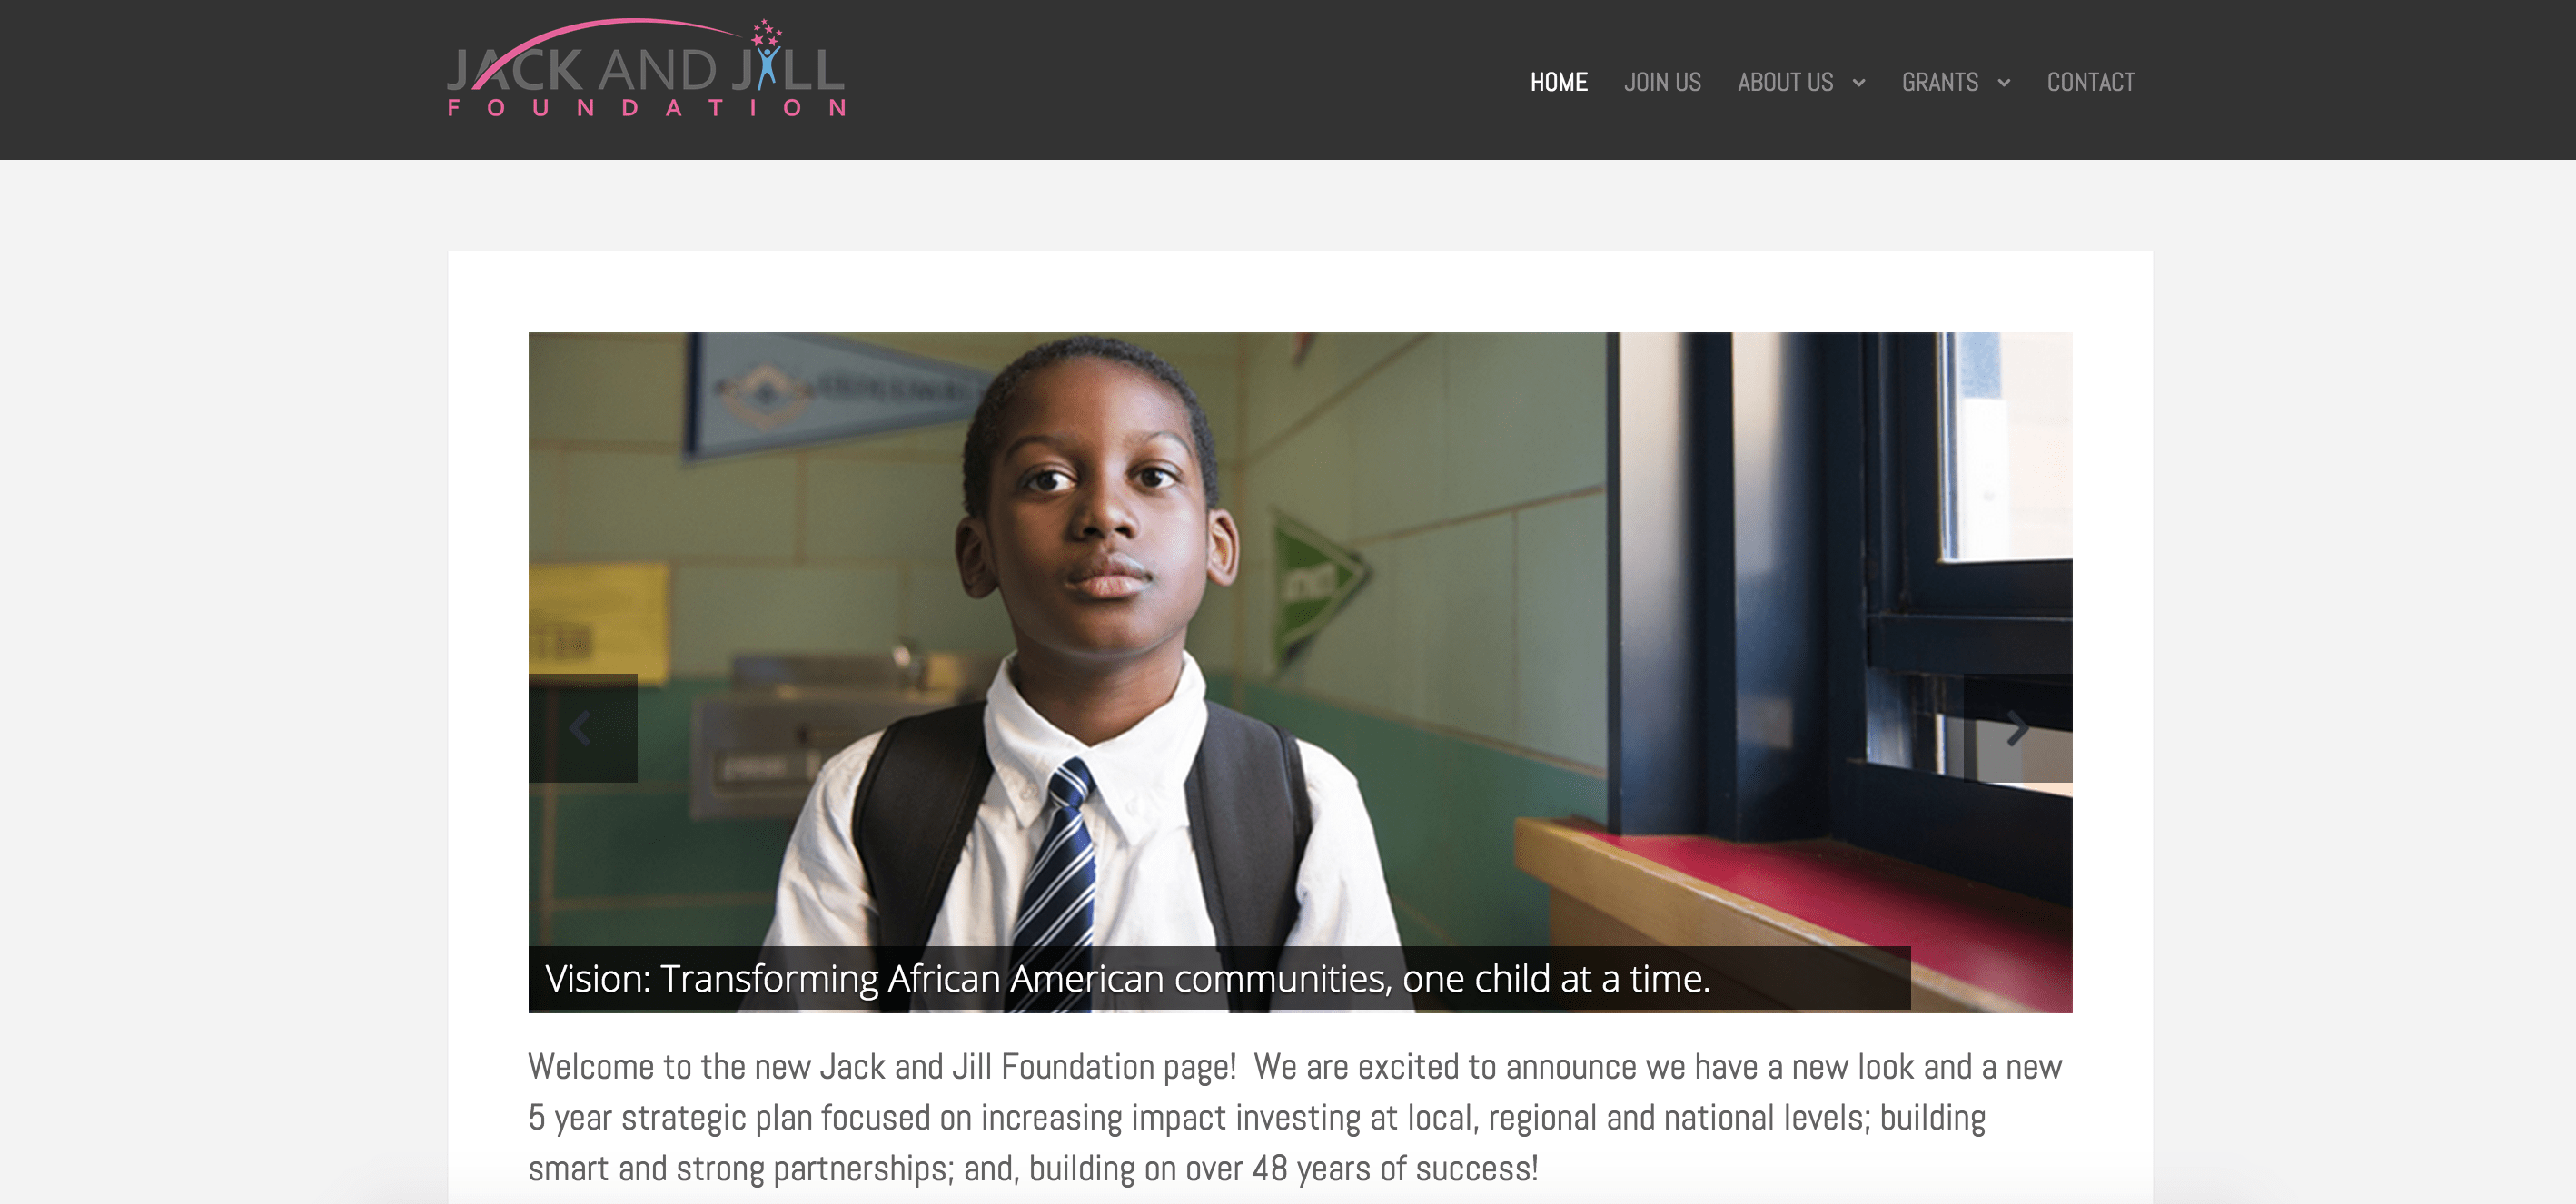 Jack and Jill Foundation